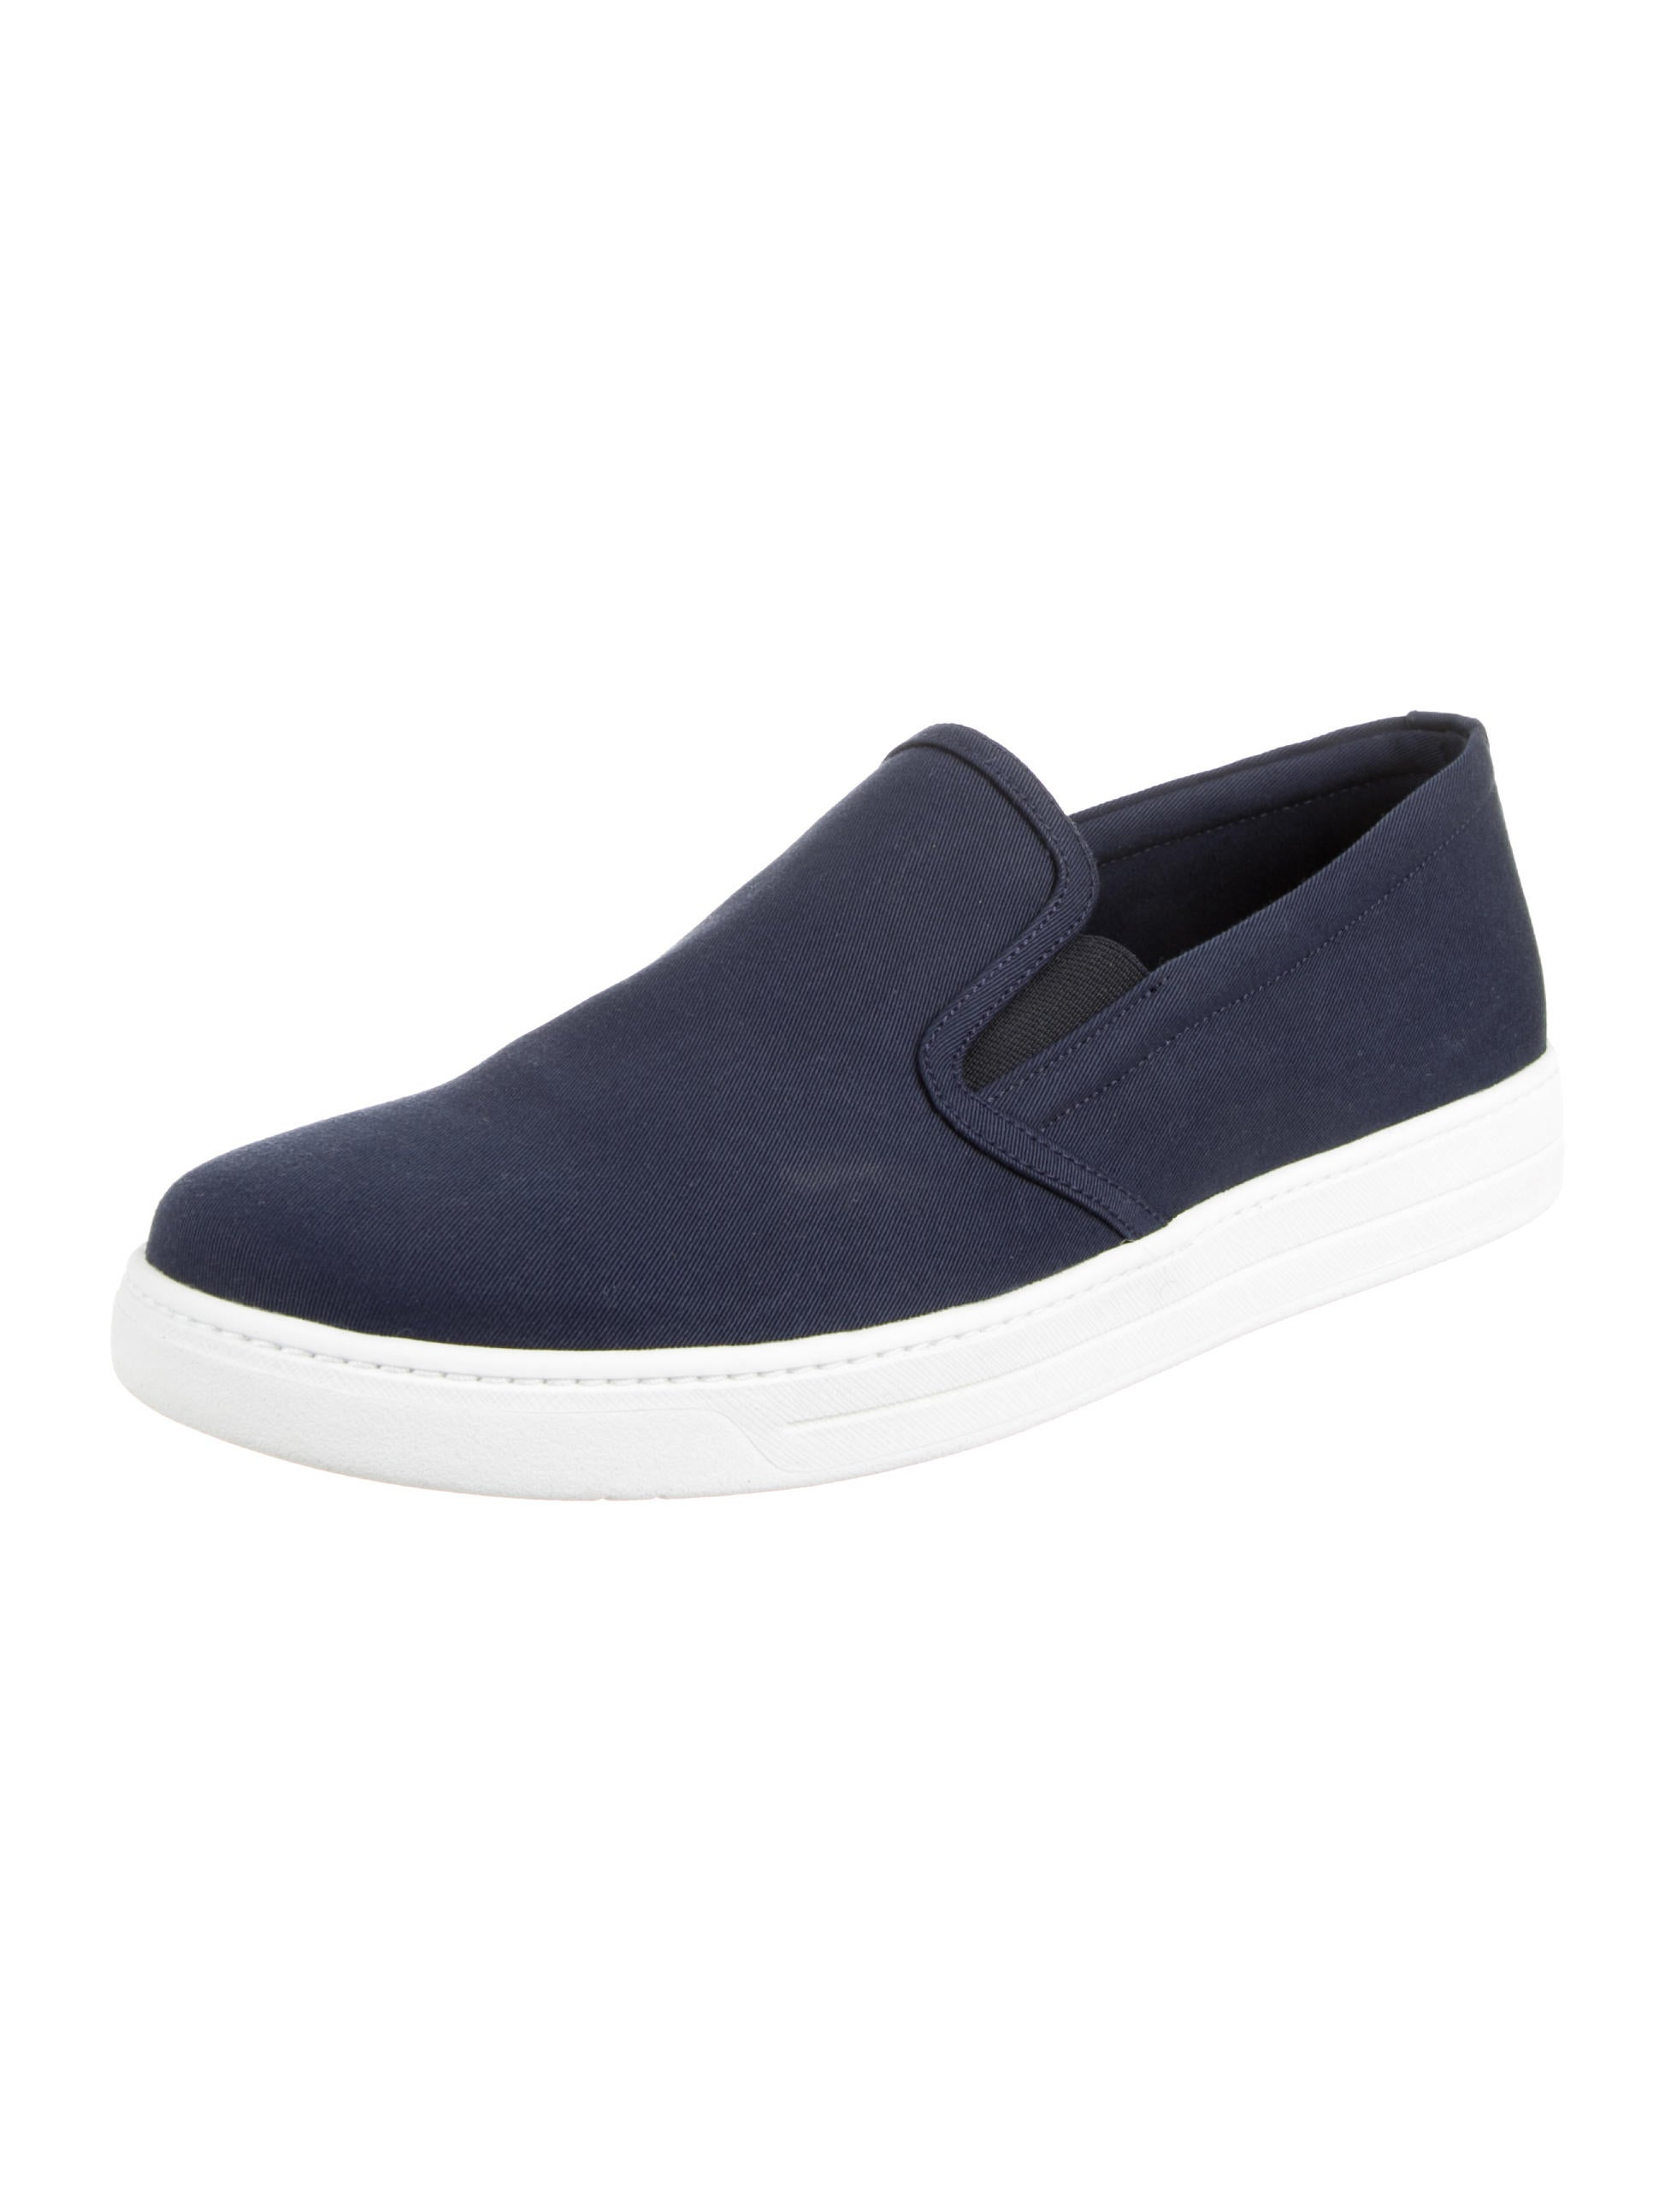 free shipping 100% authentic sneakernews for sale Prada Round-Toe Slip-On Sneakers sale from china cheap classic xtj707SYR